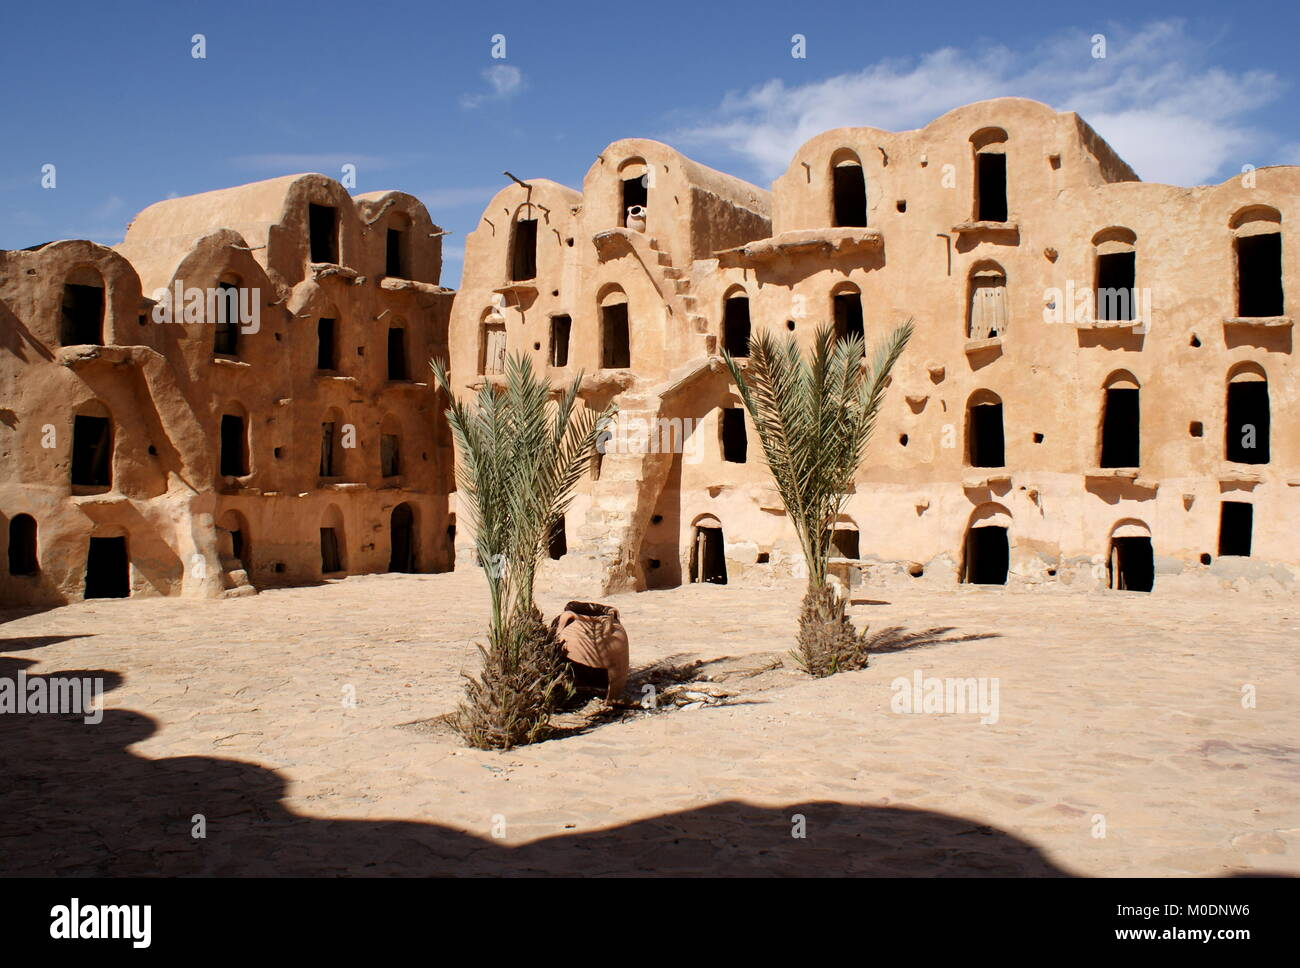 Ksar Ouled Soltane, fortified granary, Tataouine district, Tunisia Stock Photo